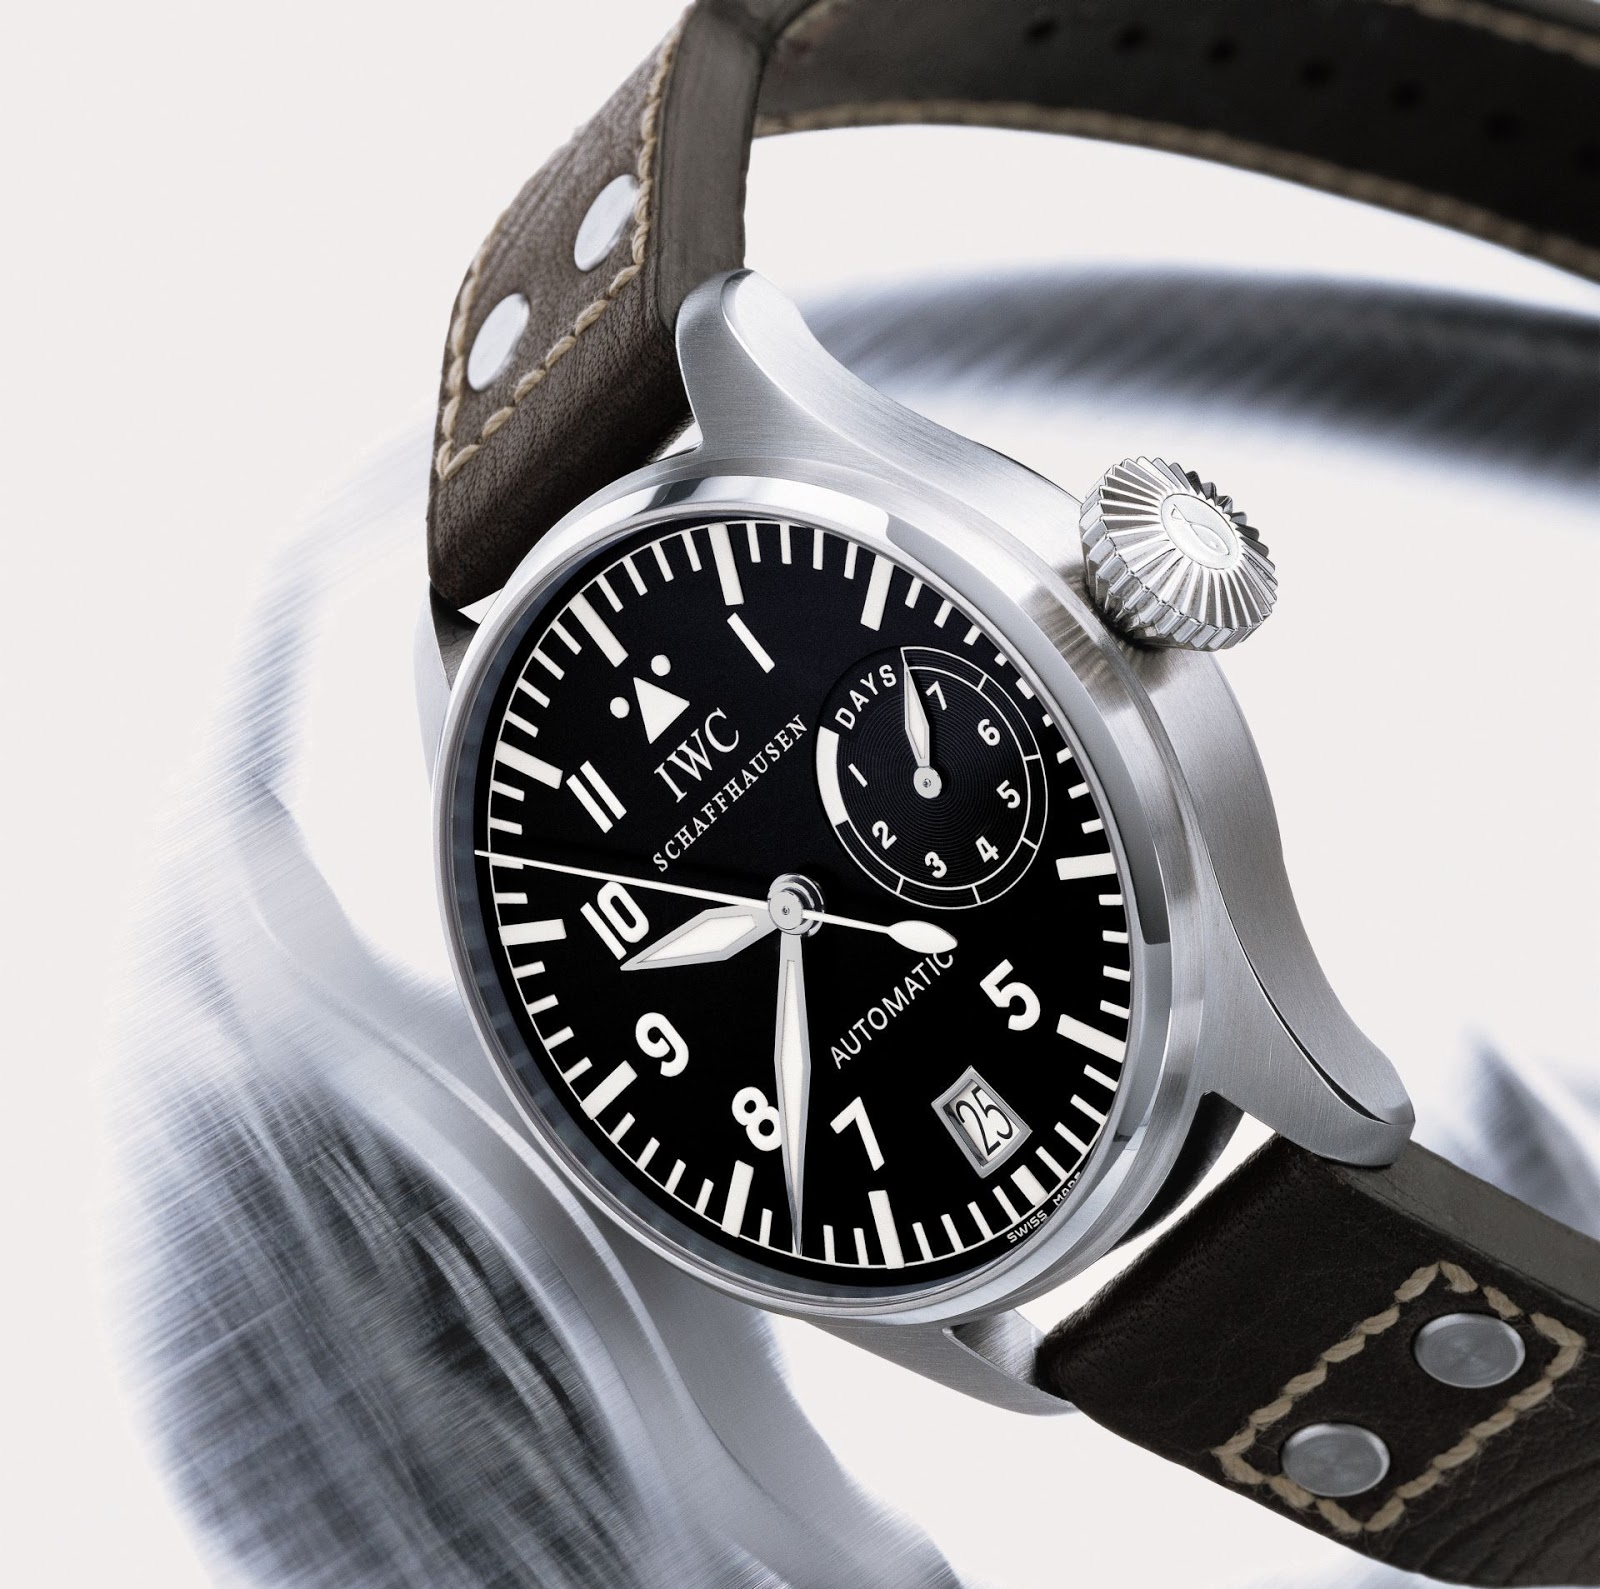 Description Replica IWC Big Pilot Watch Ref. 5002